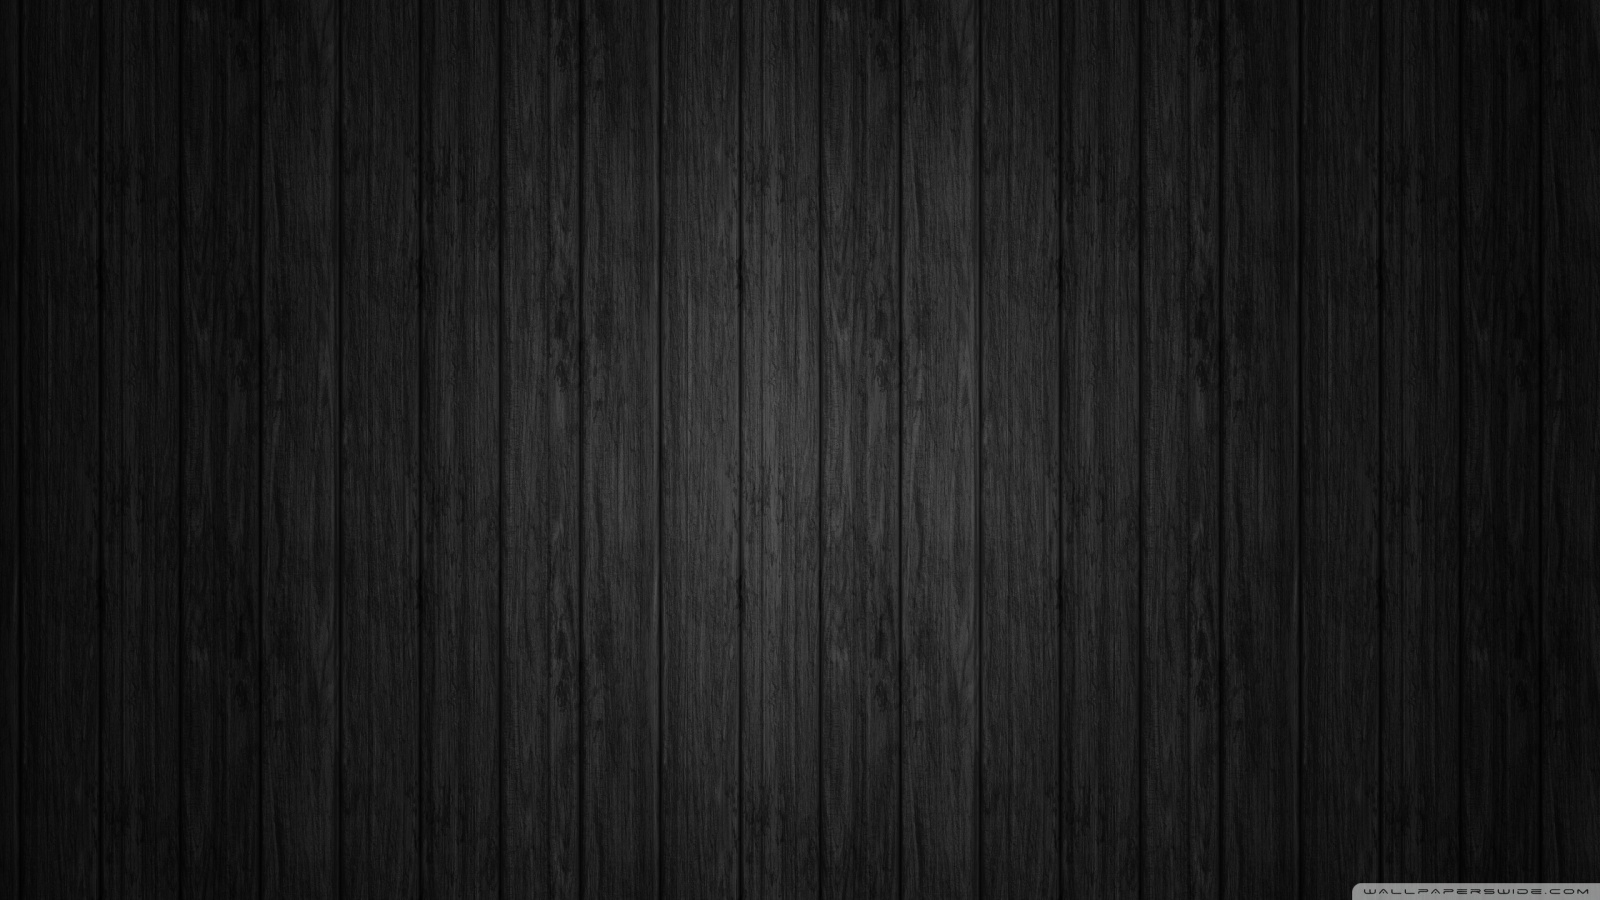 Dark woods picture hd dark woods picture dark woods pictures hd - Dark Woods Wallpaper Hd